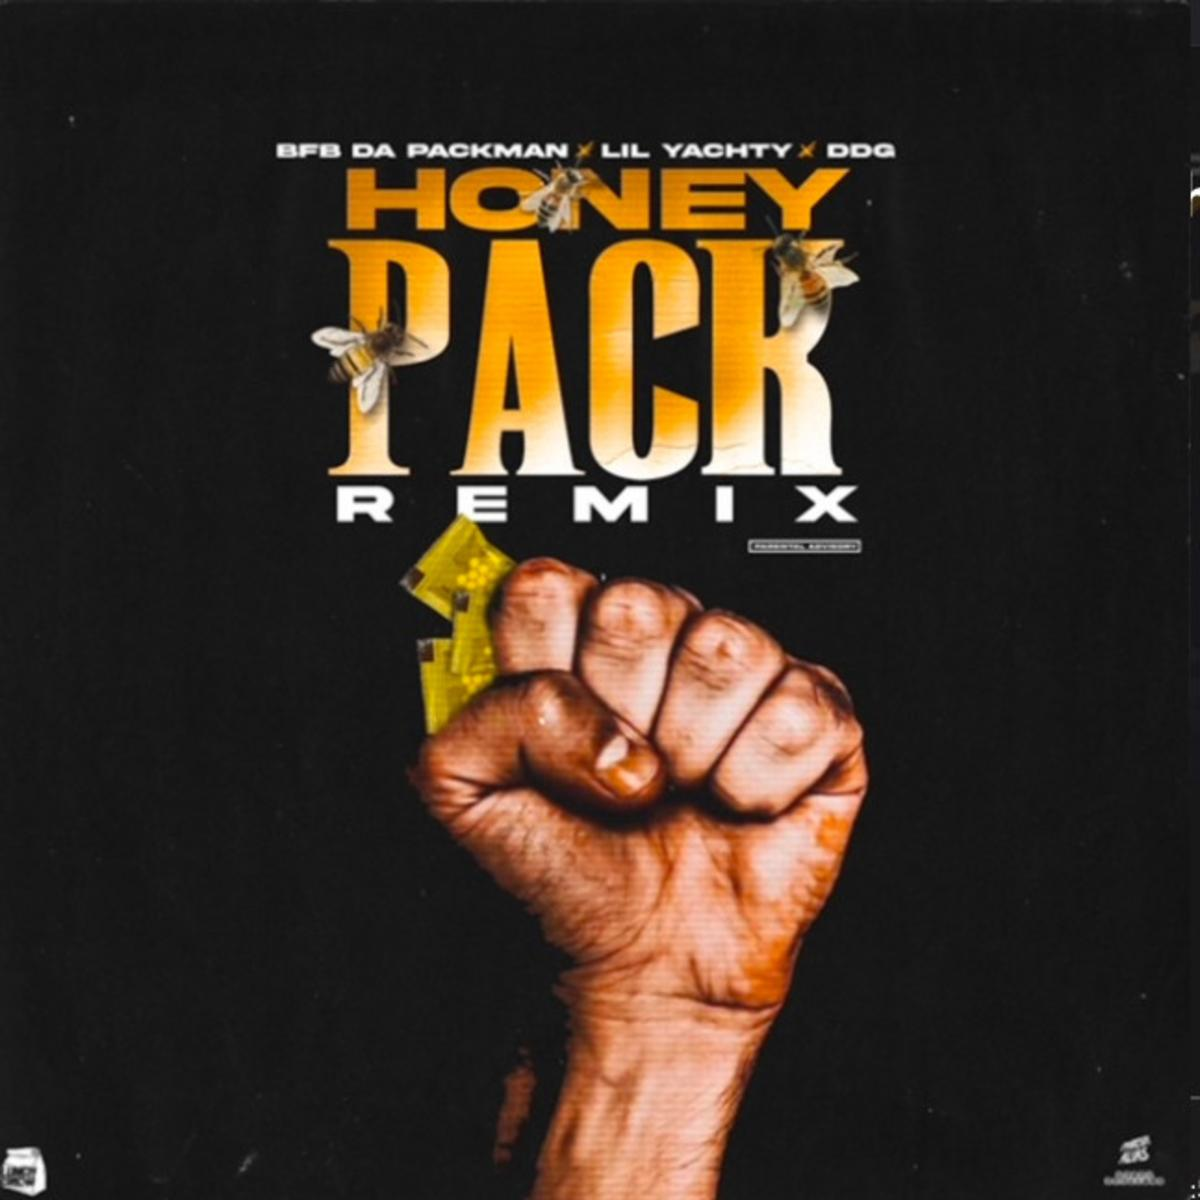 Honey Pack (Remix) – [BFB Da Packman] feat. [Lil Yachty] [DDG]